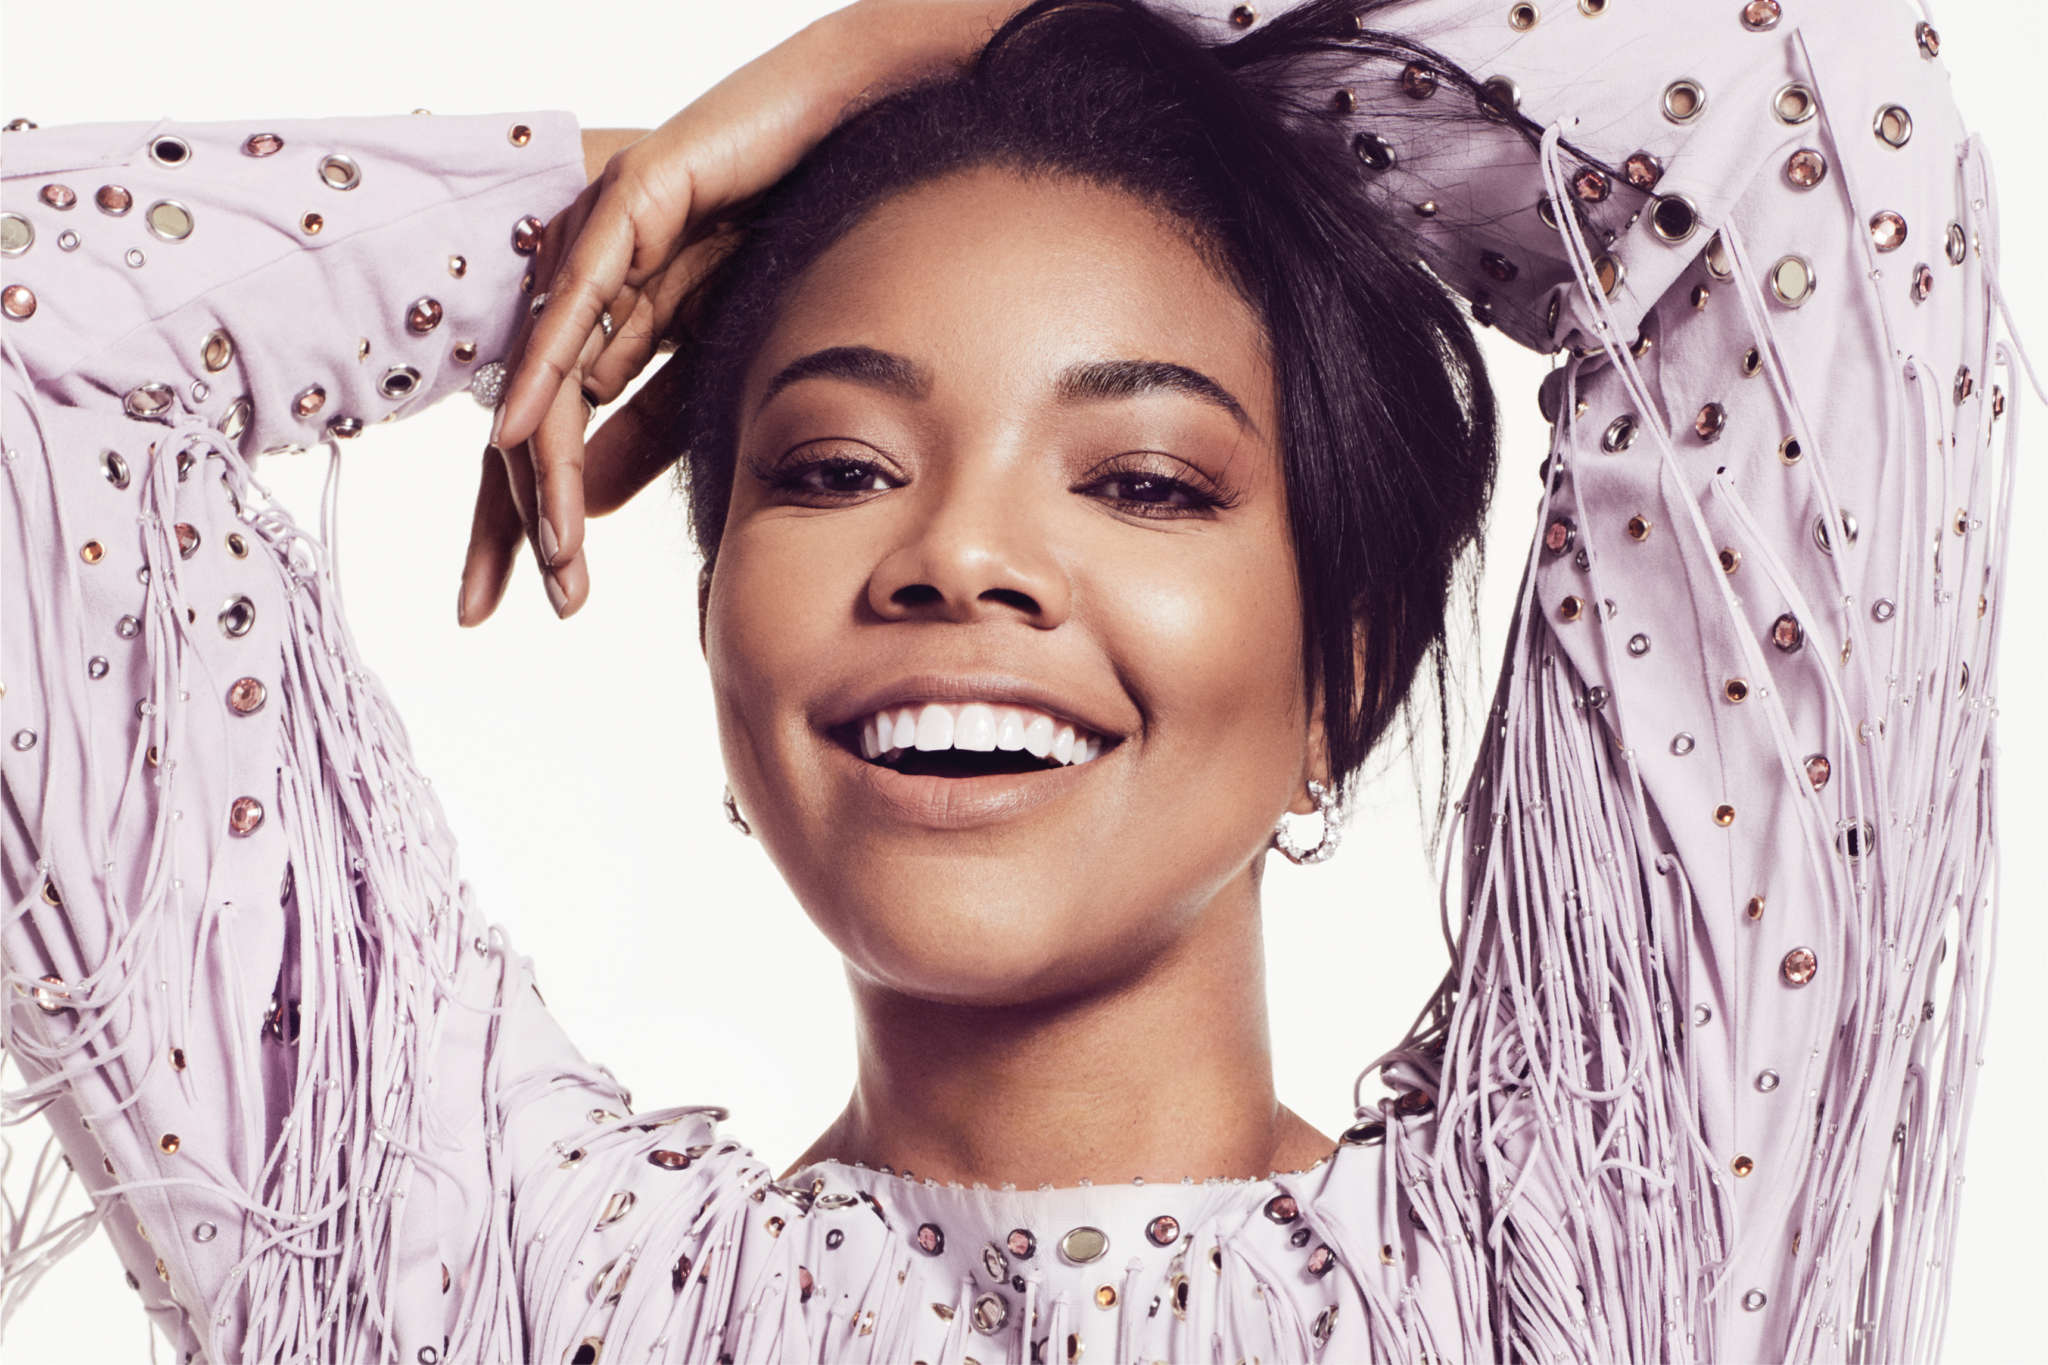 Gabrielle Union Dreams About How She Used To Dance On The Tables